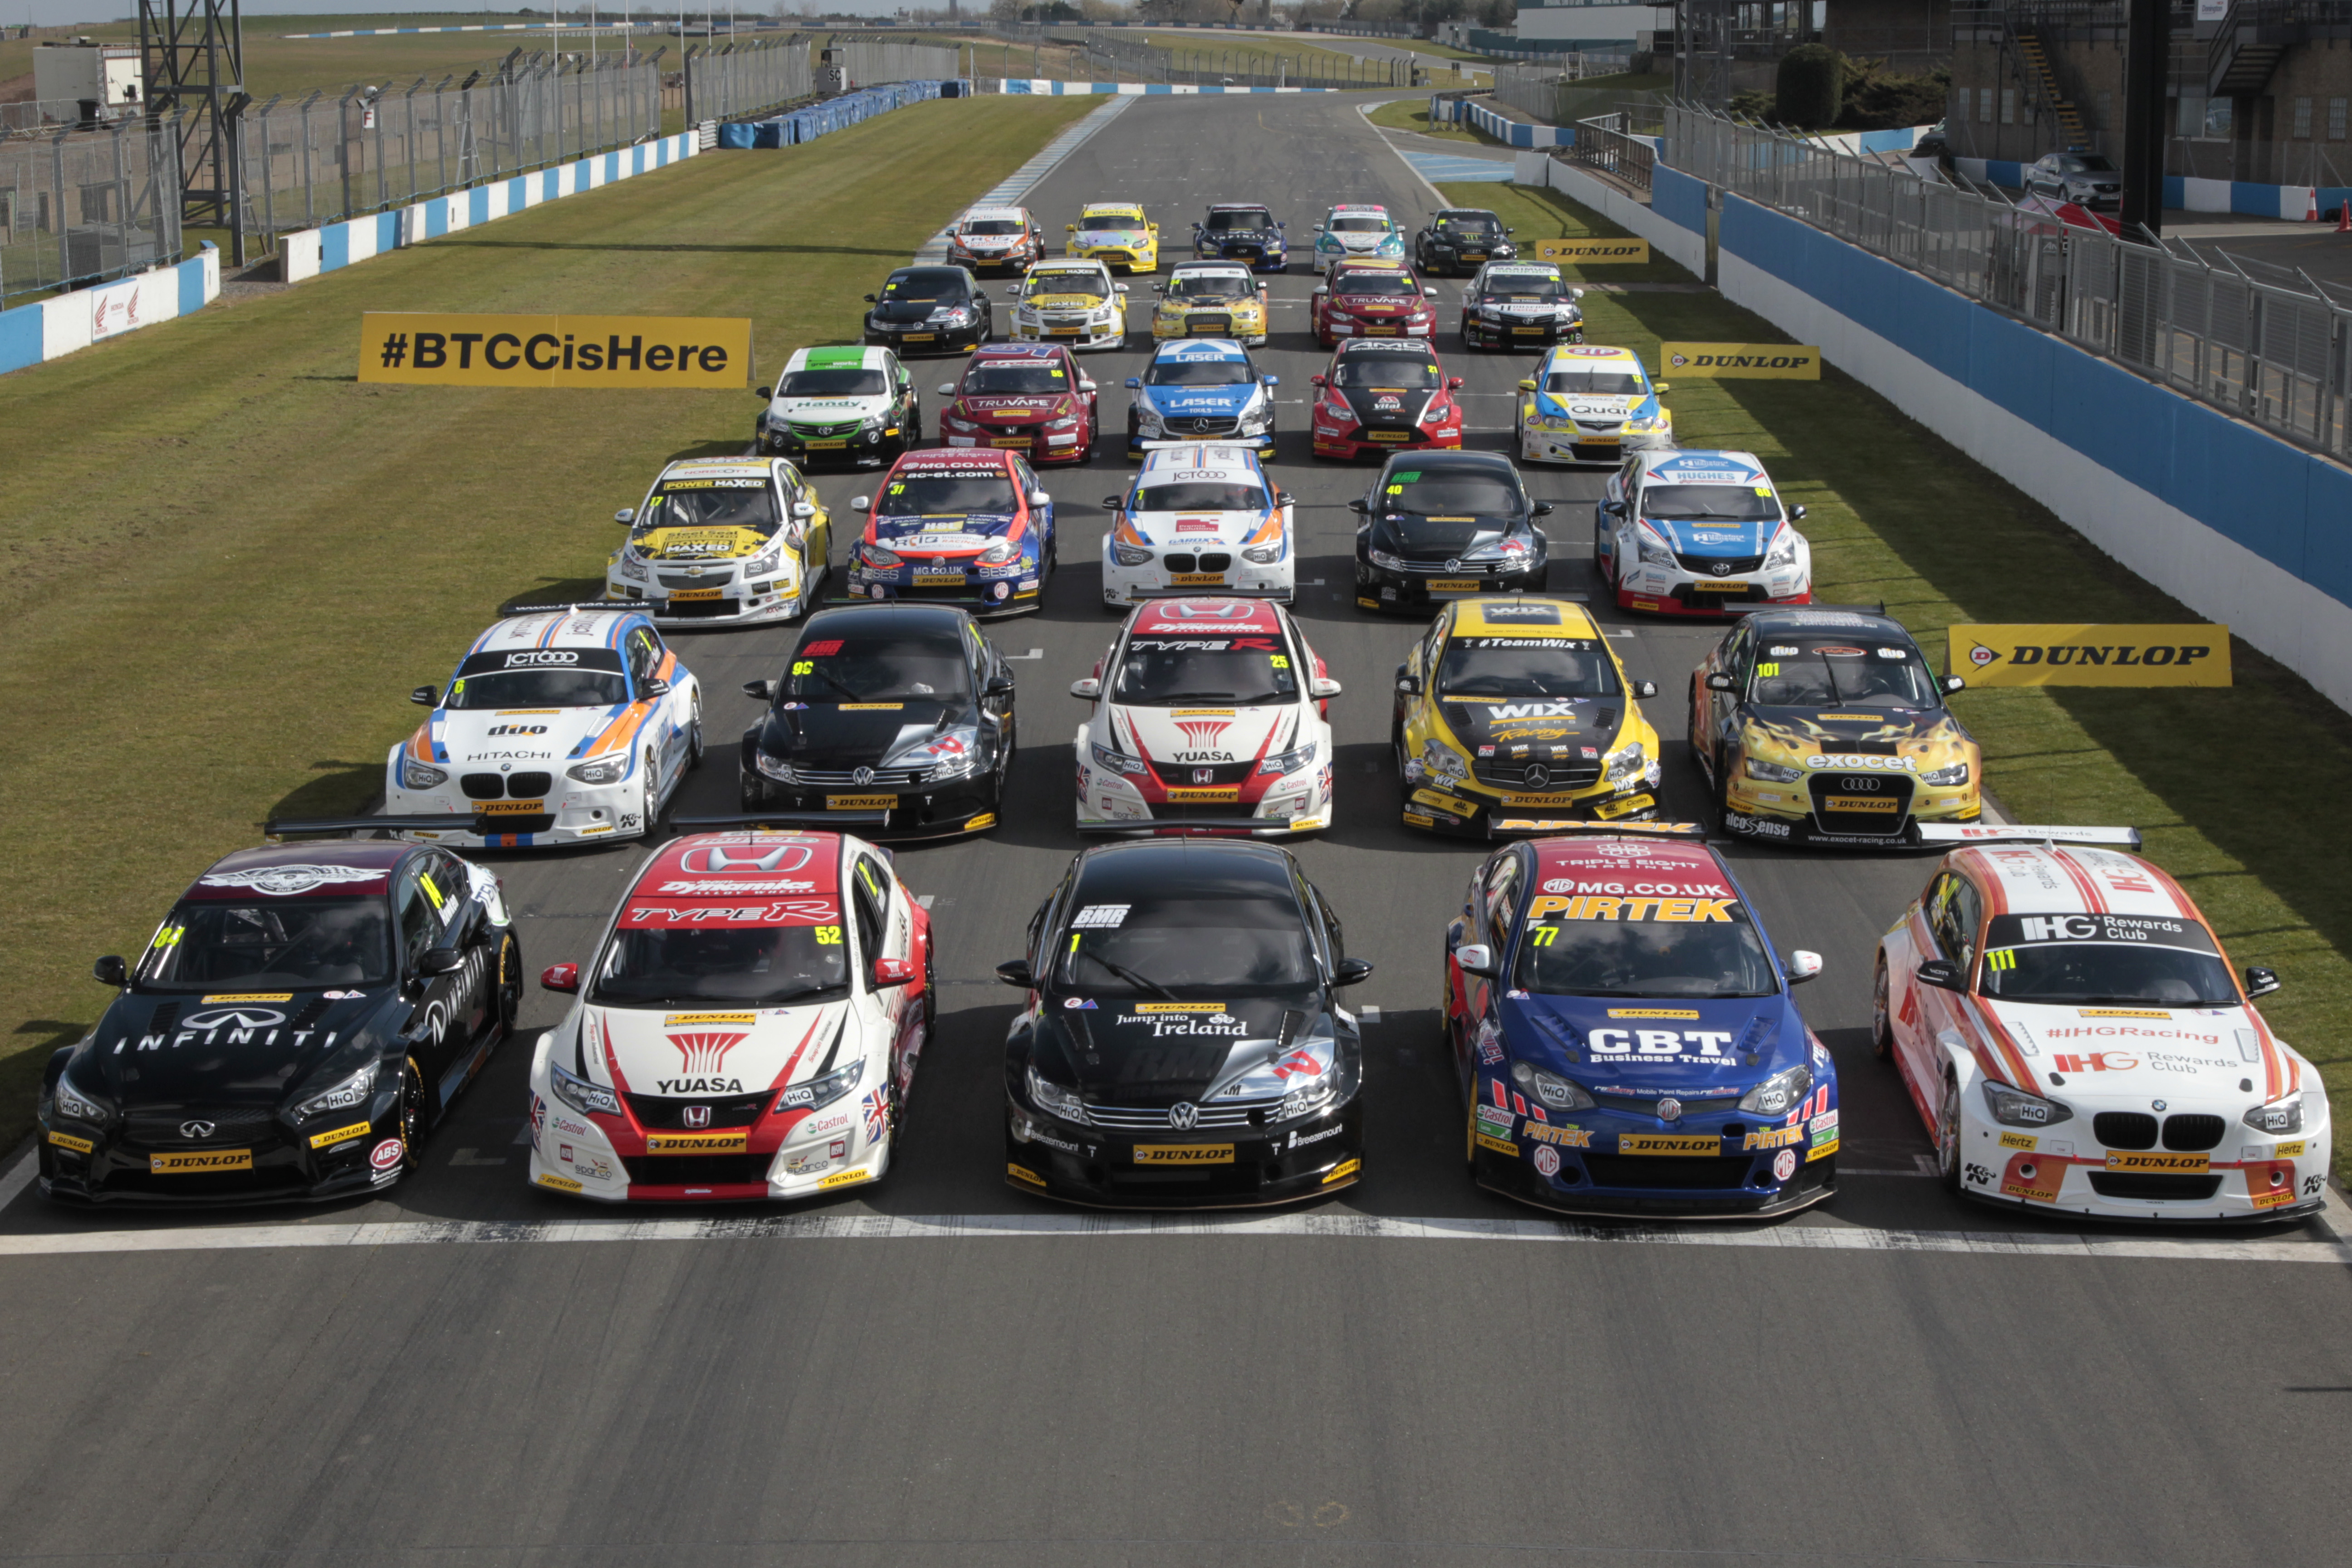 Donington Park Touring Cars